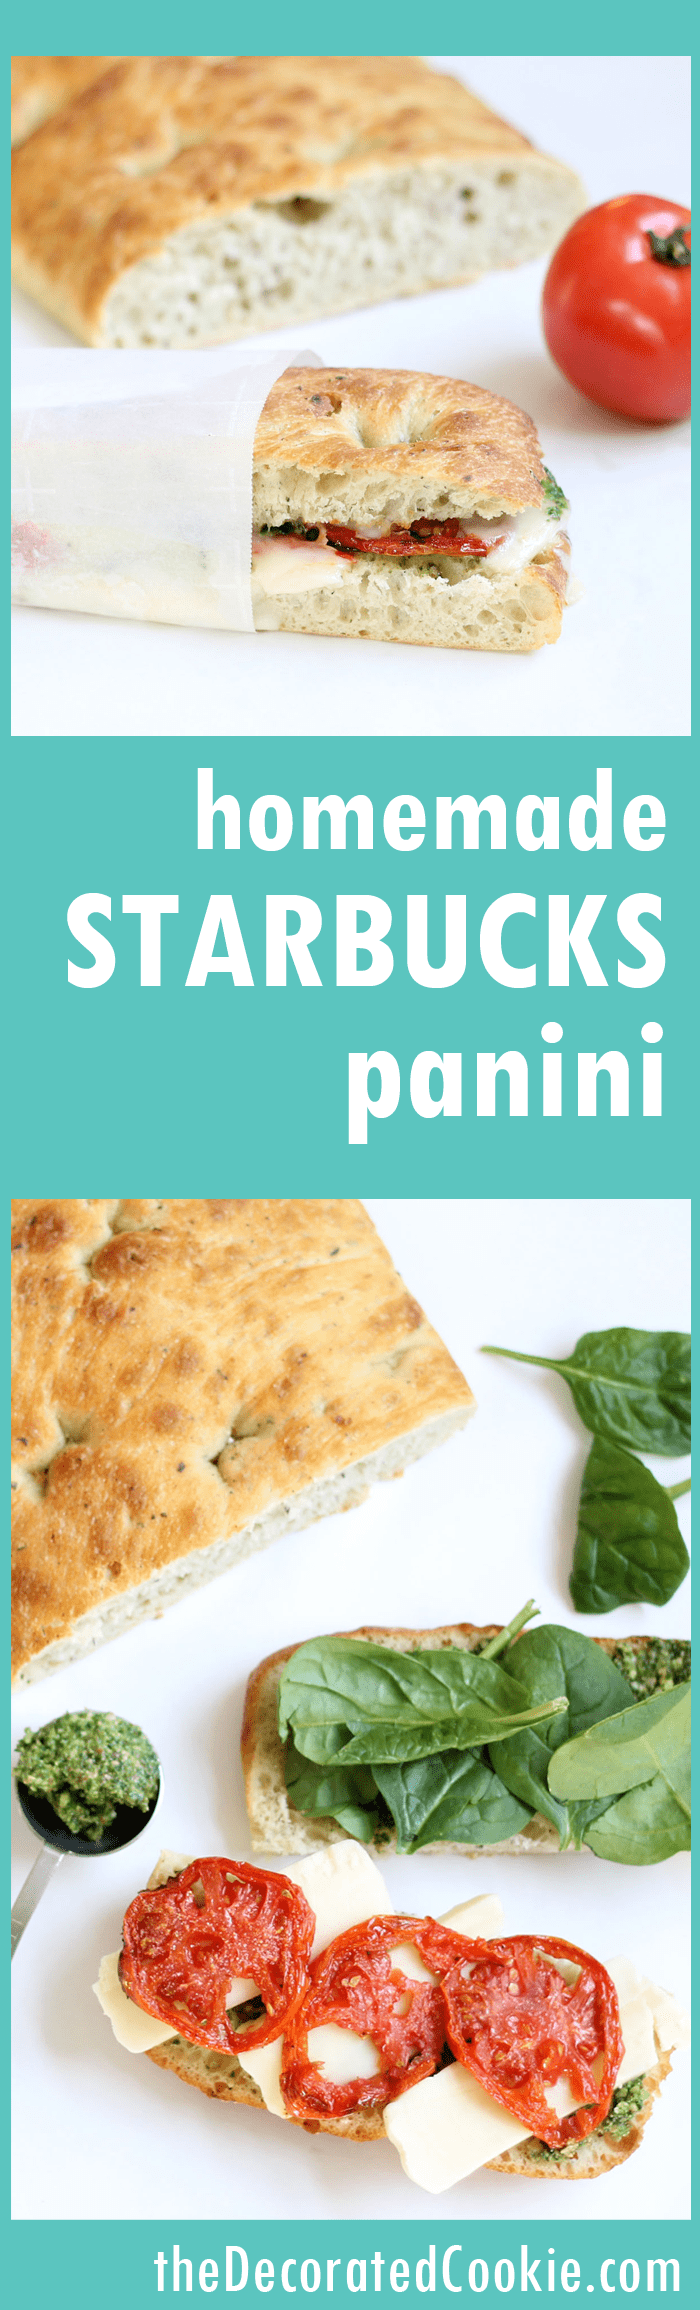 Make a homemade Starbucks panini with roasted tomatoes, pesto, spinach, and mozzarella cheese. A delicious lunch idea. Starbucks sandwiches. With video.